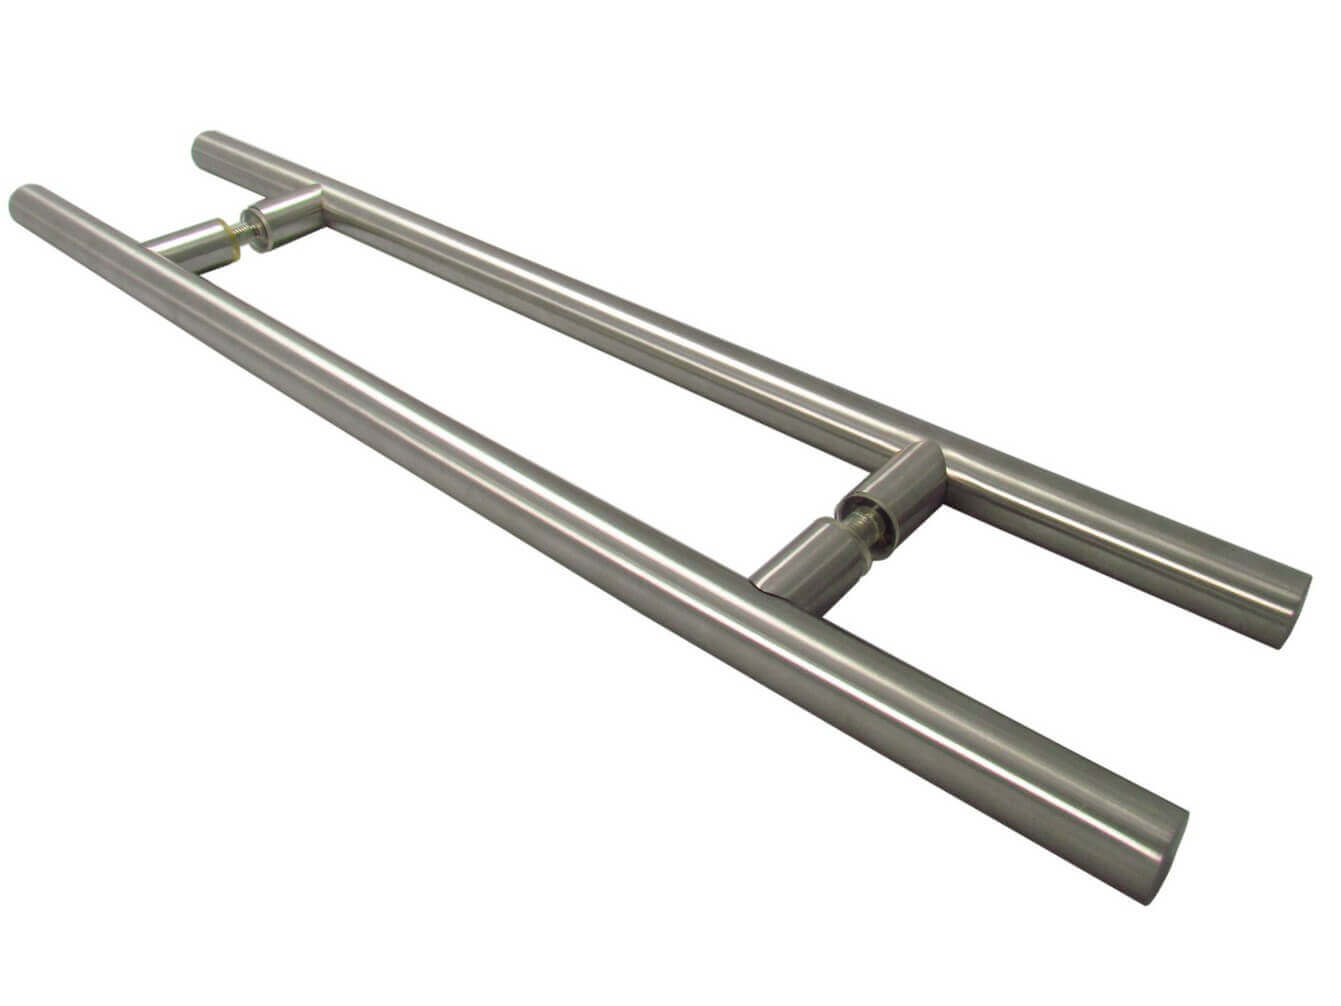 Commercial Door Pull High Quality Builder Hardware